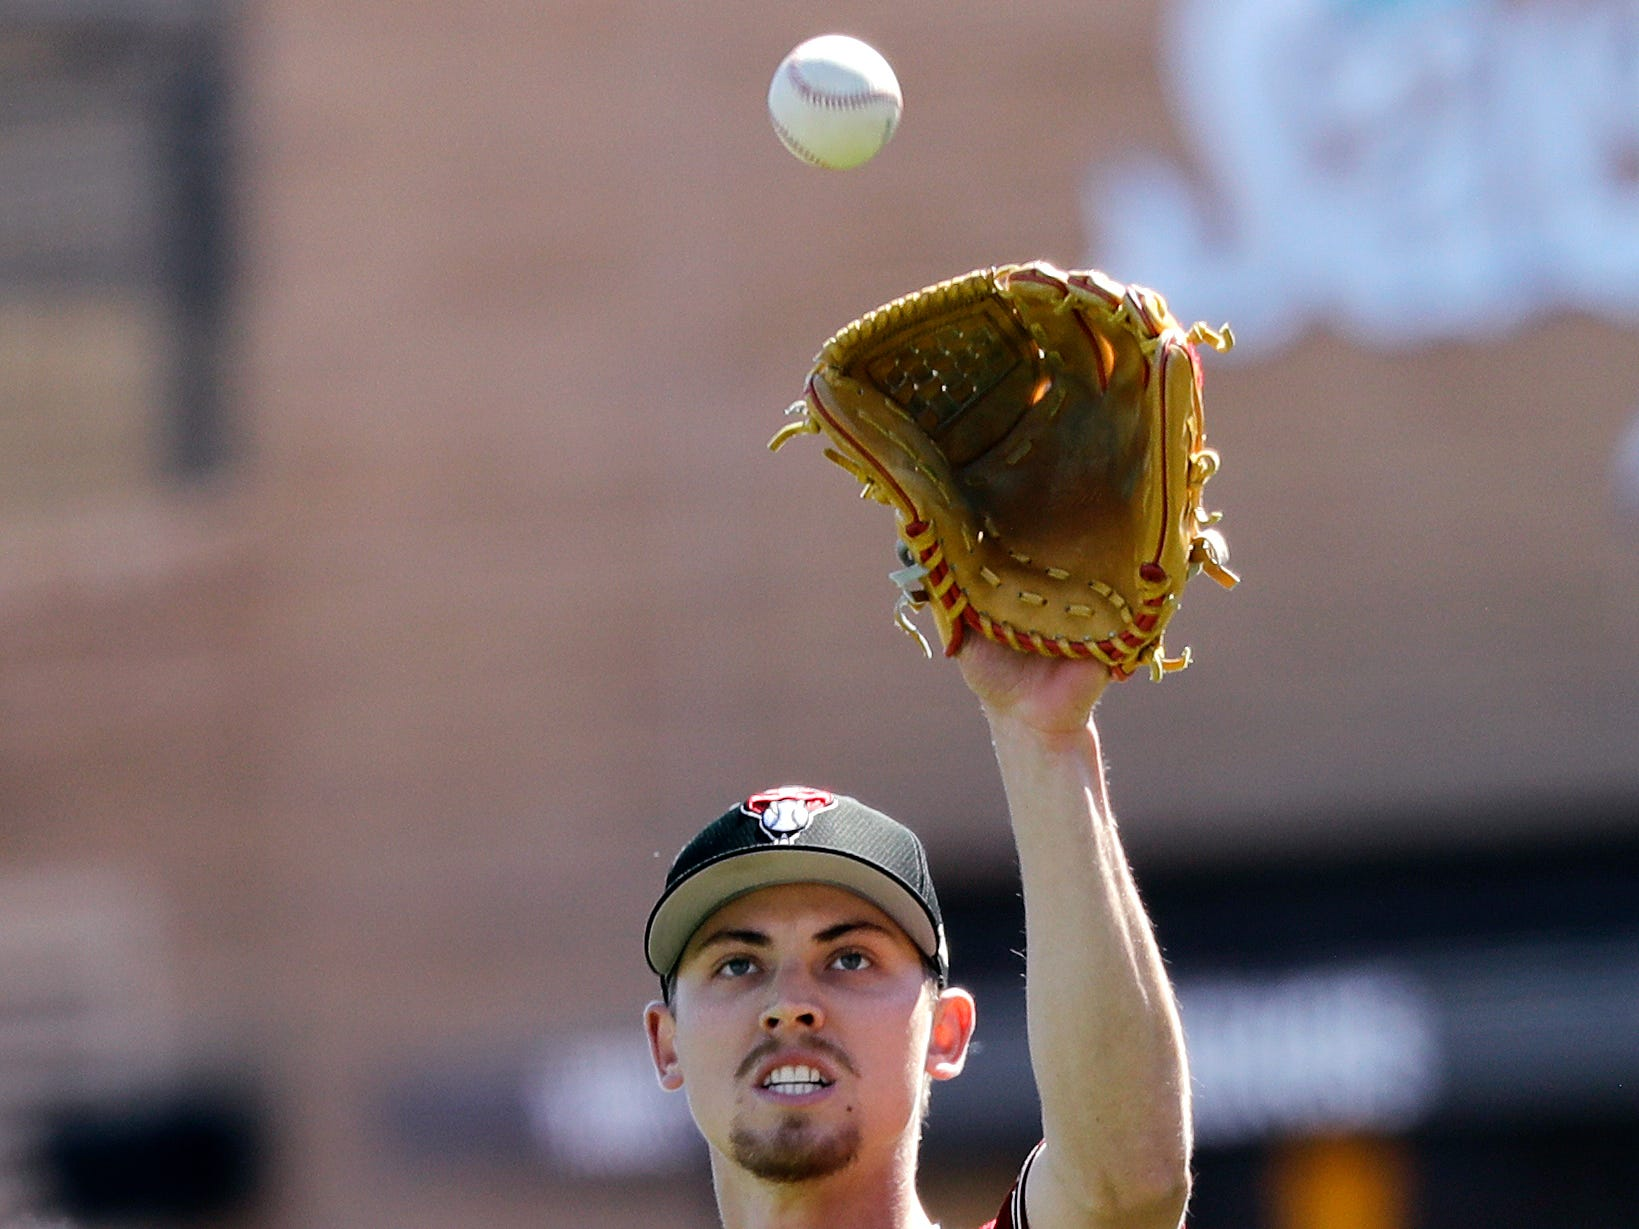 Arizona Diamondbacks starting pitcher Luke Weaver reaches for a ball against the San Francisco Giants in a spring training baseball game Thursday, March 14, 2019, in Scottsdale, Ariz.